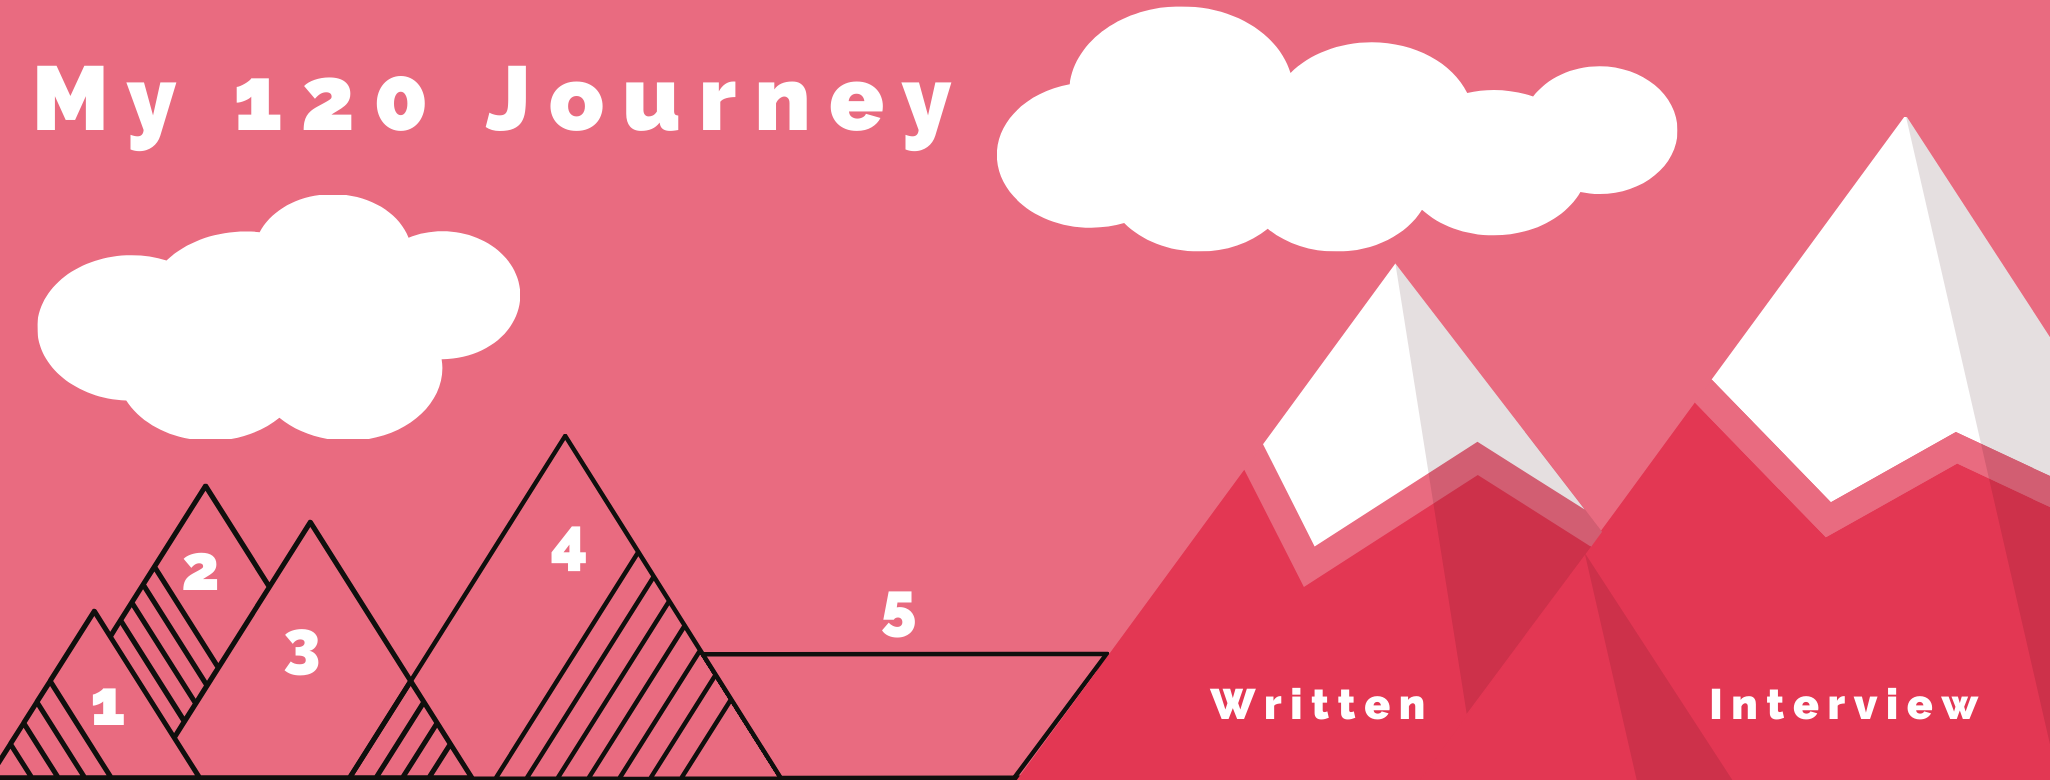 4 outlines of mountains representing lessons 1–4, a plateau at lesson 5, and real mountains representing the assessments.